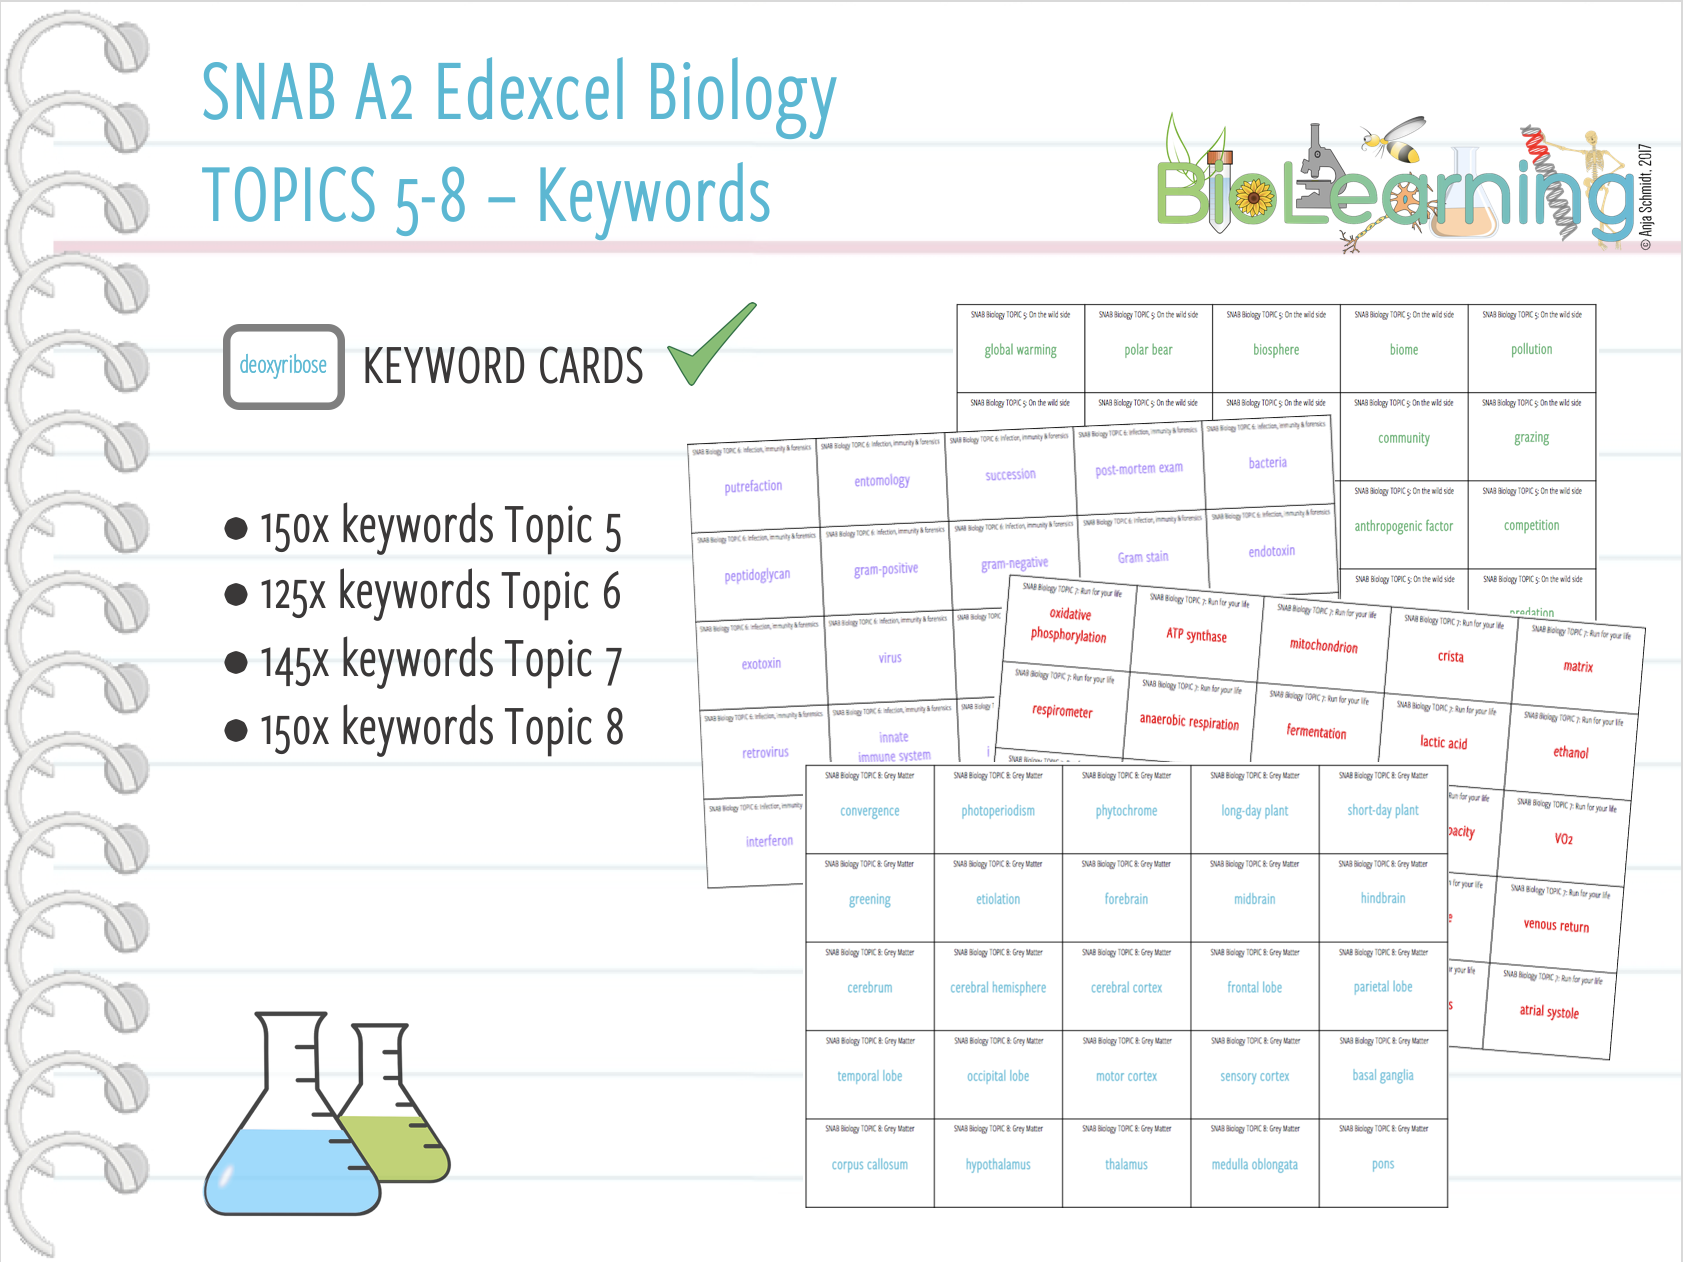 SNAB A2 Biology:  Keywords for Topics 5-8